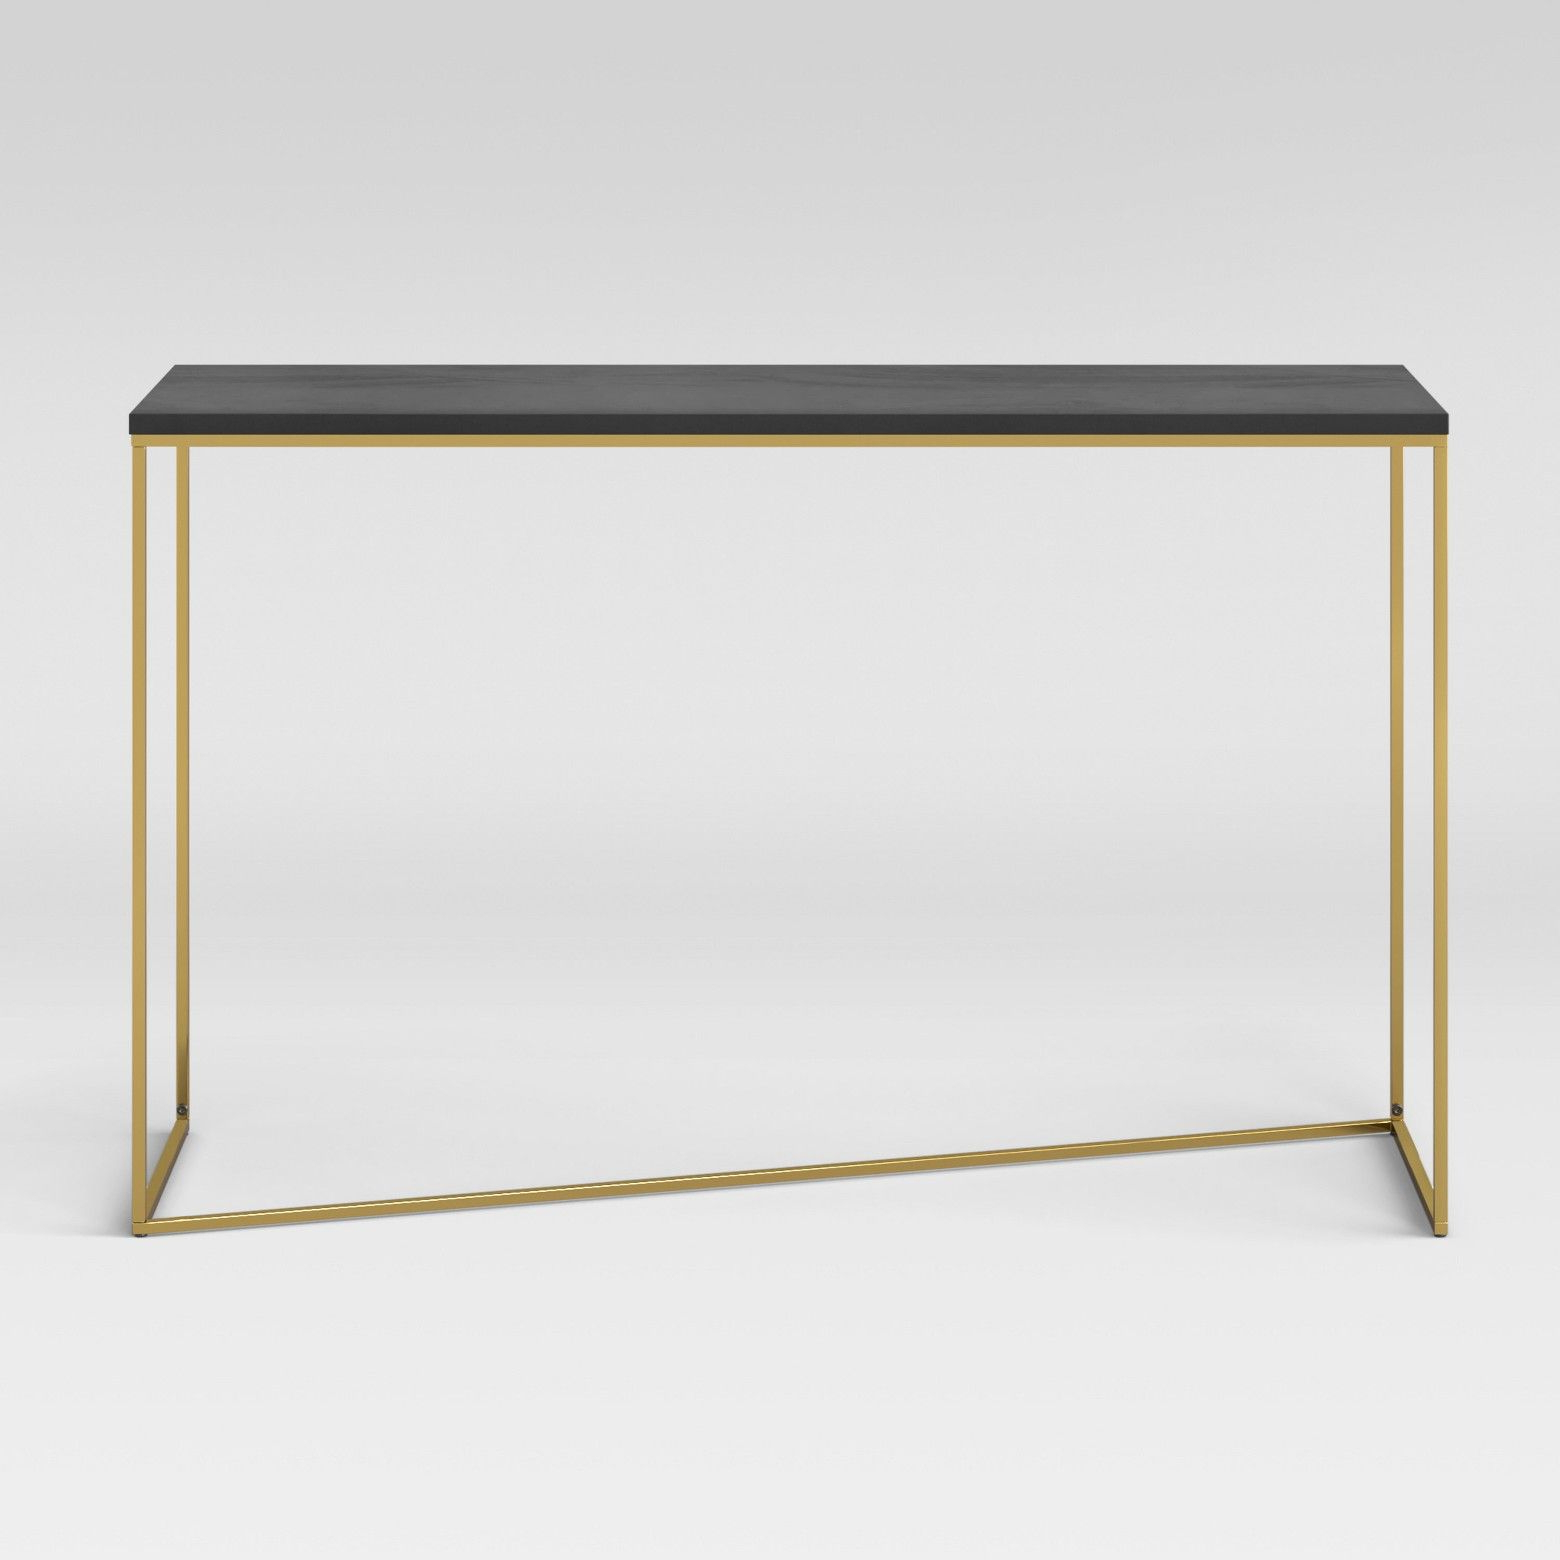 The Sollerod Console Table Brass And Black From Project 62 For Well Known Elke Glass Console Tables With Brass Base (View 6 of 20)